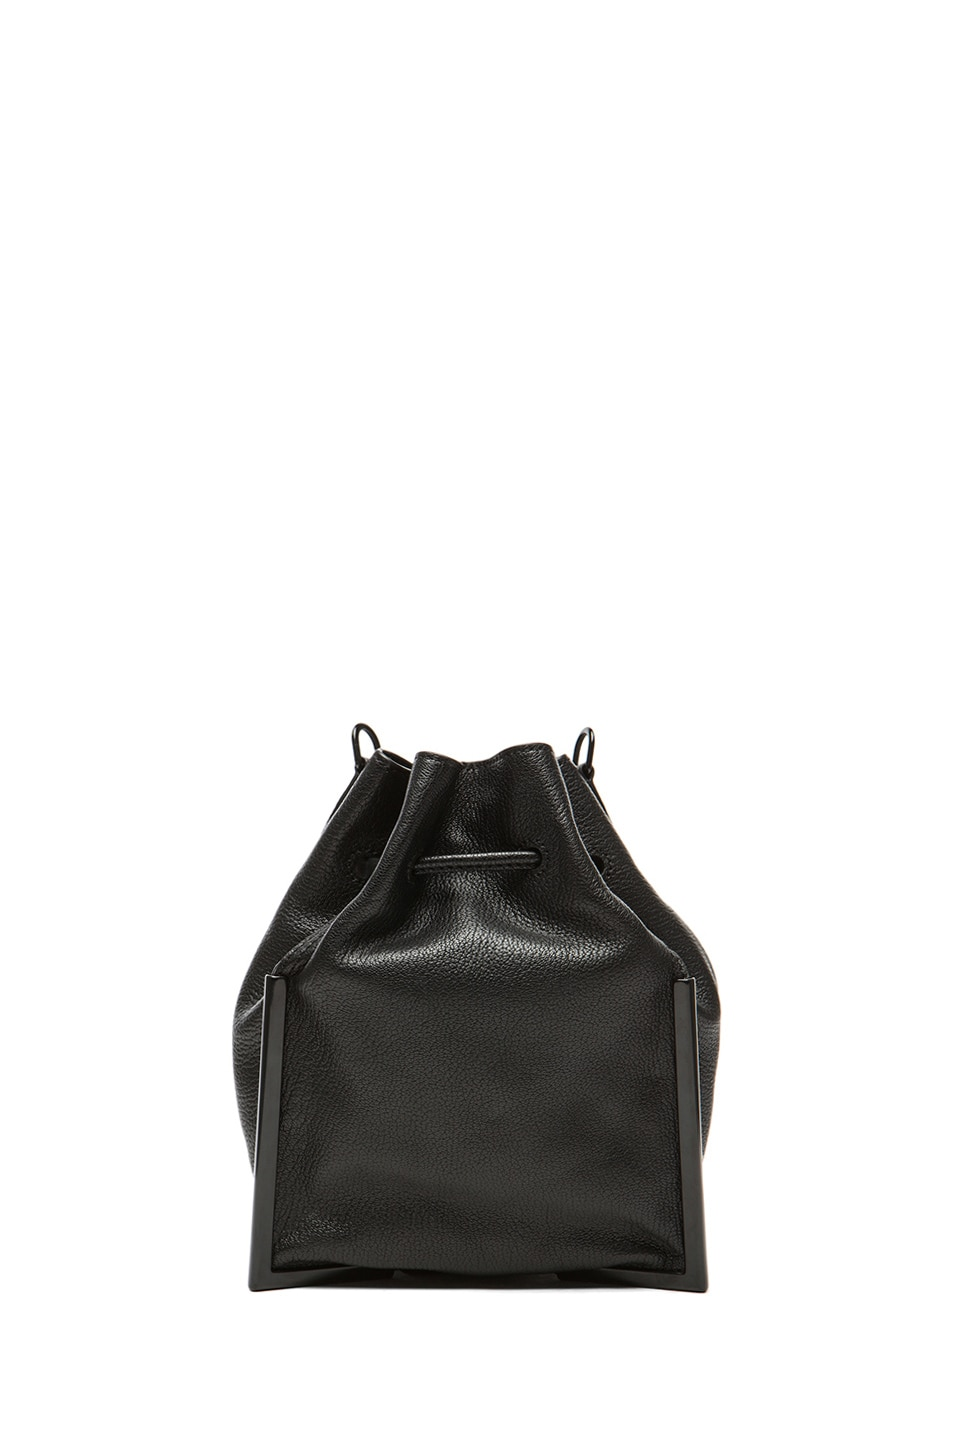 Image 2 of 3.1 phillip lim Small Scout Crossbody in Midnight & Black